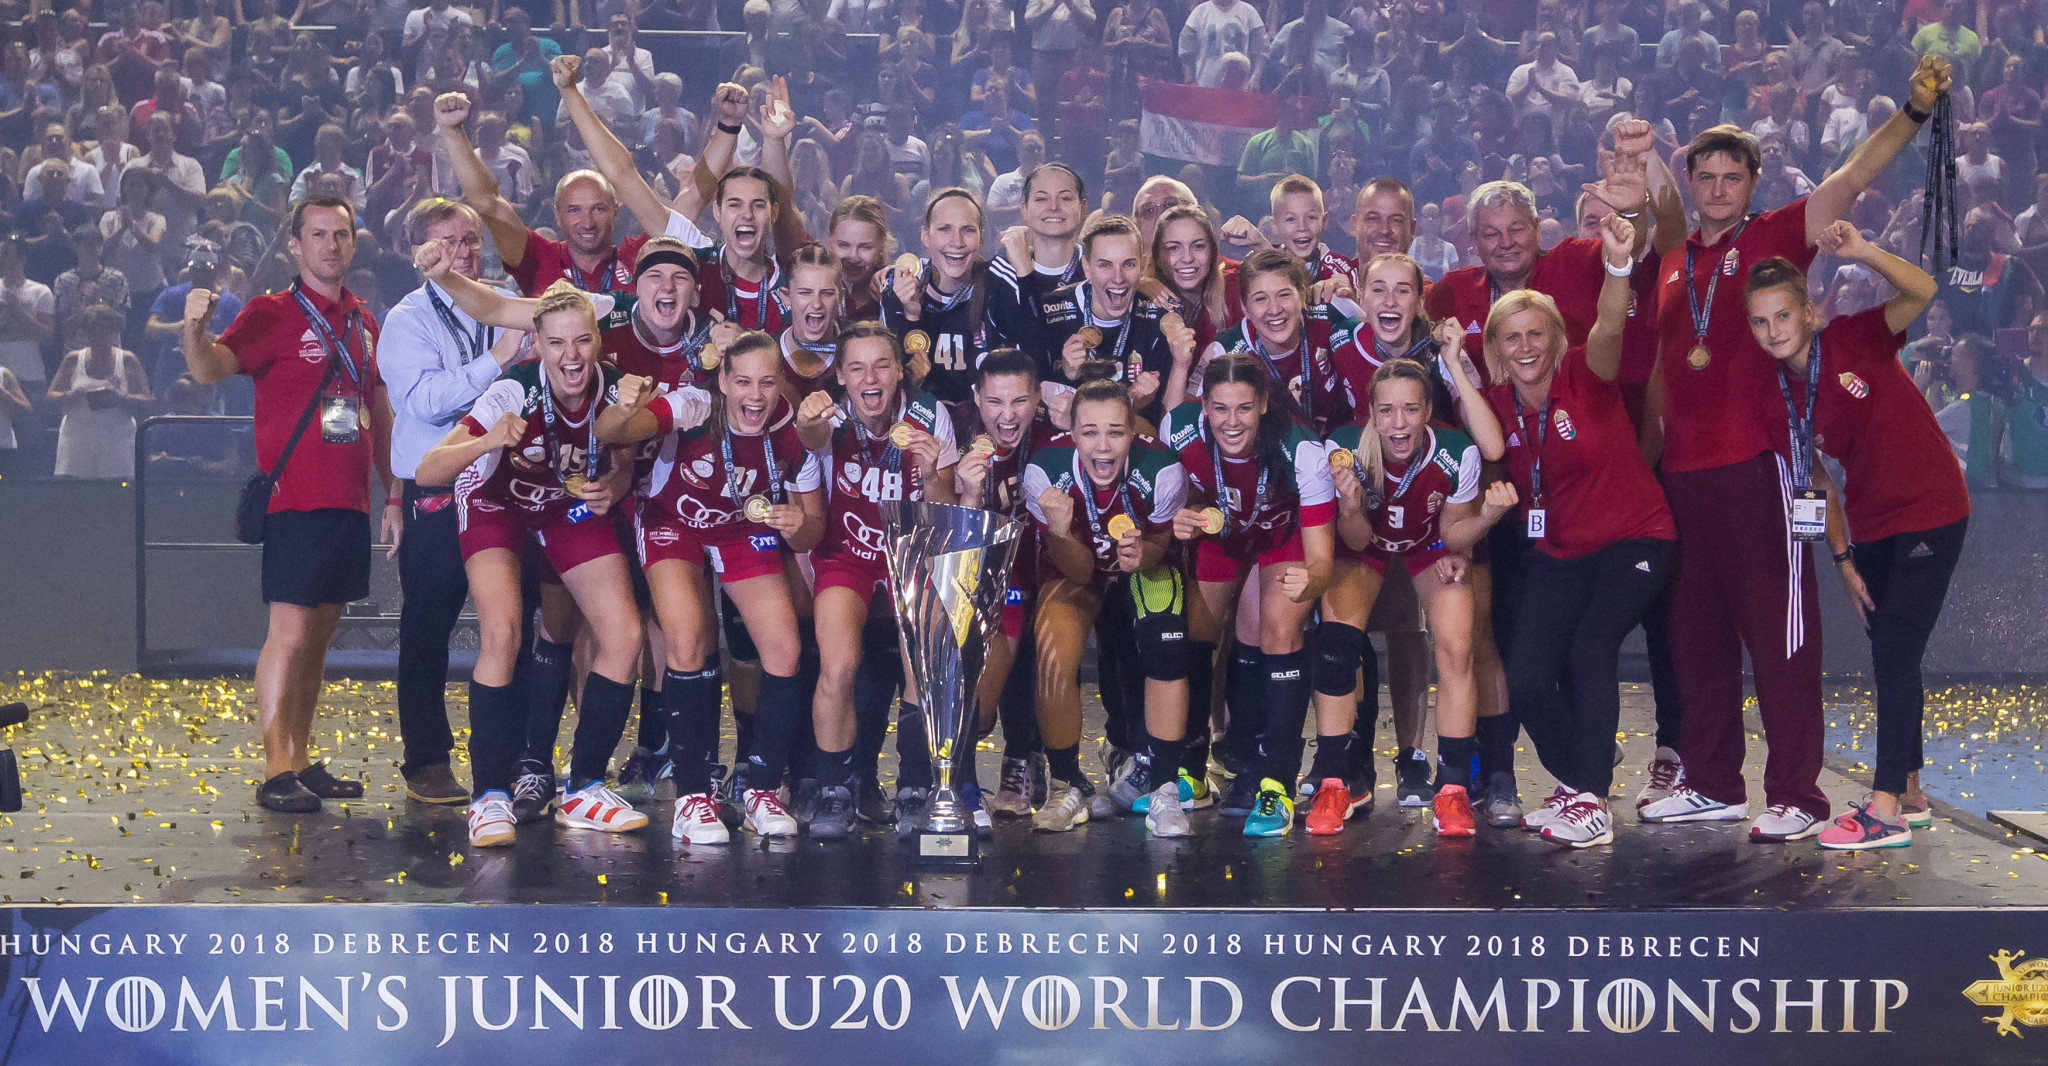 Hungary won the world junior title on home soil ©IHF